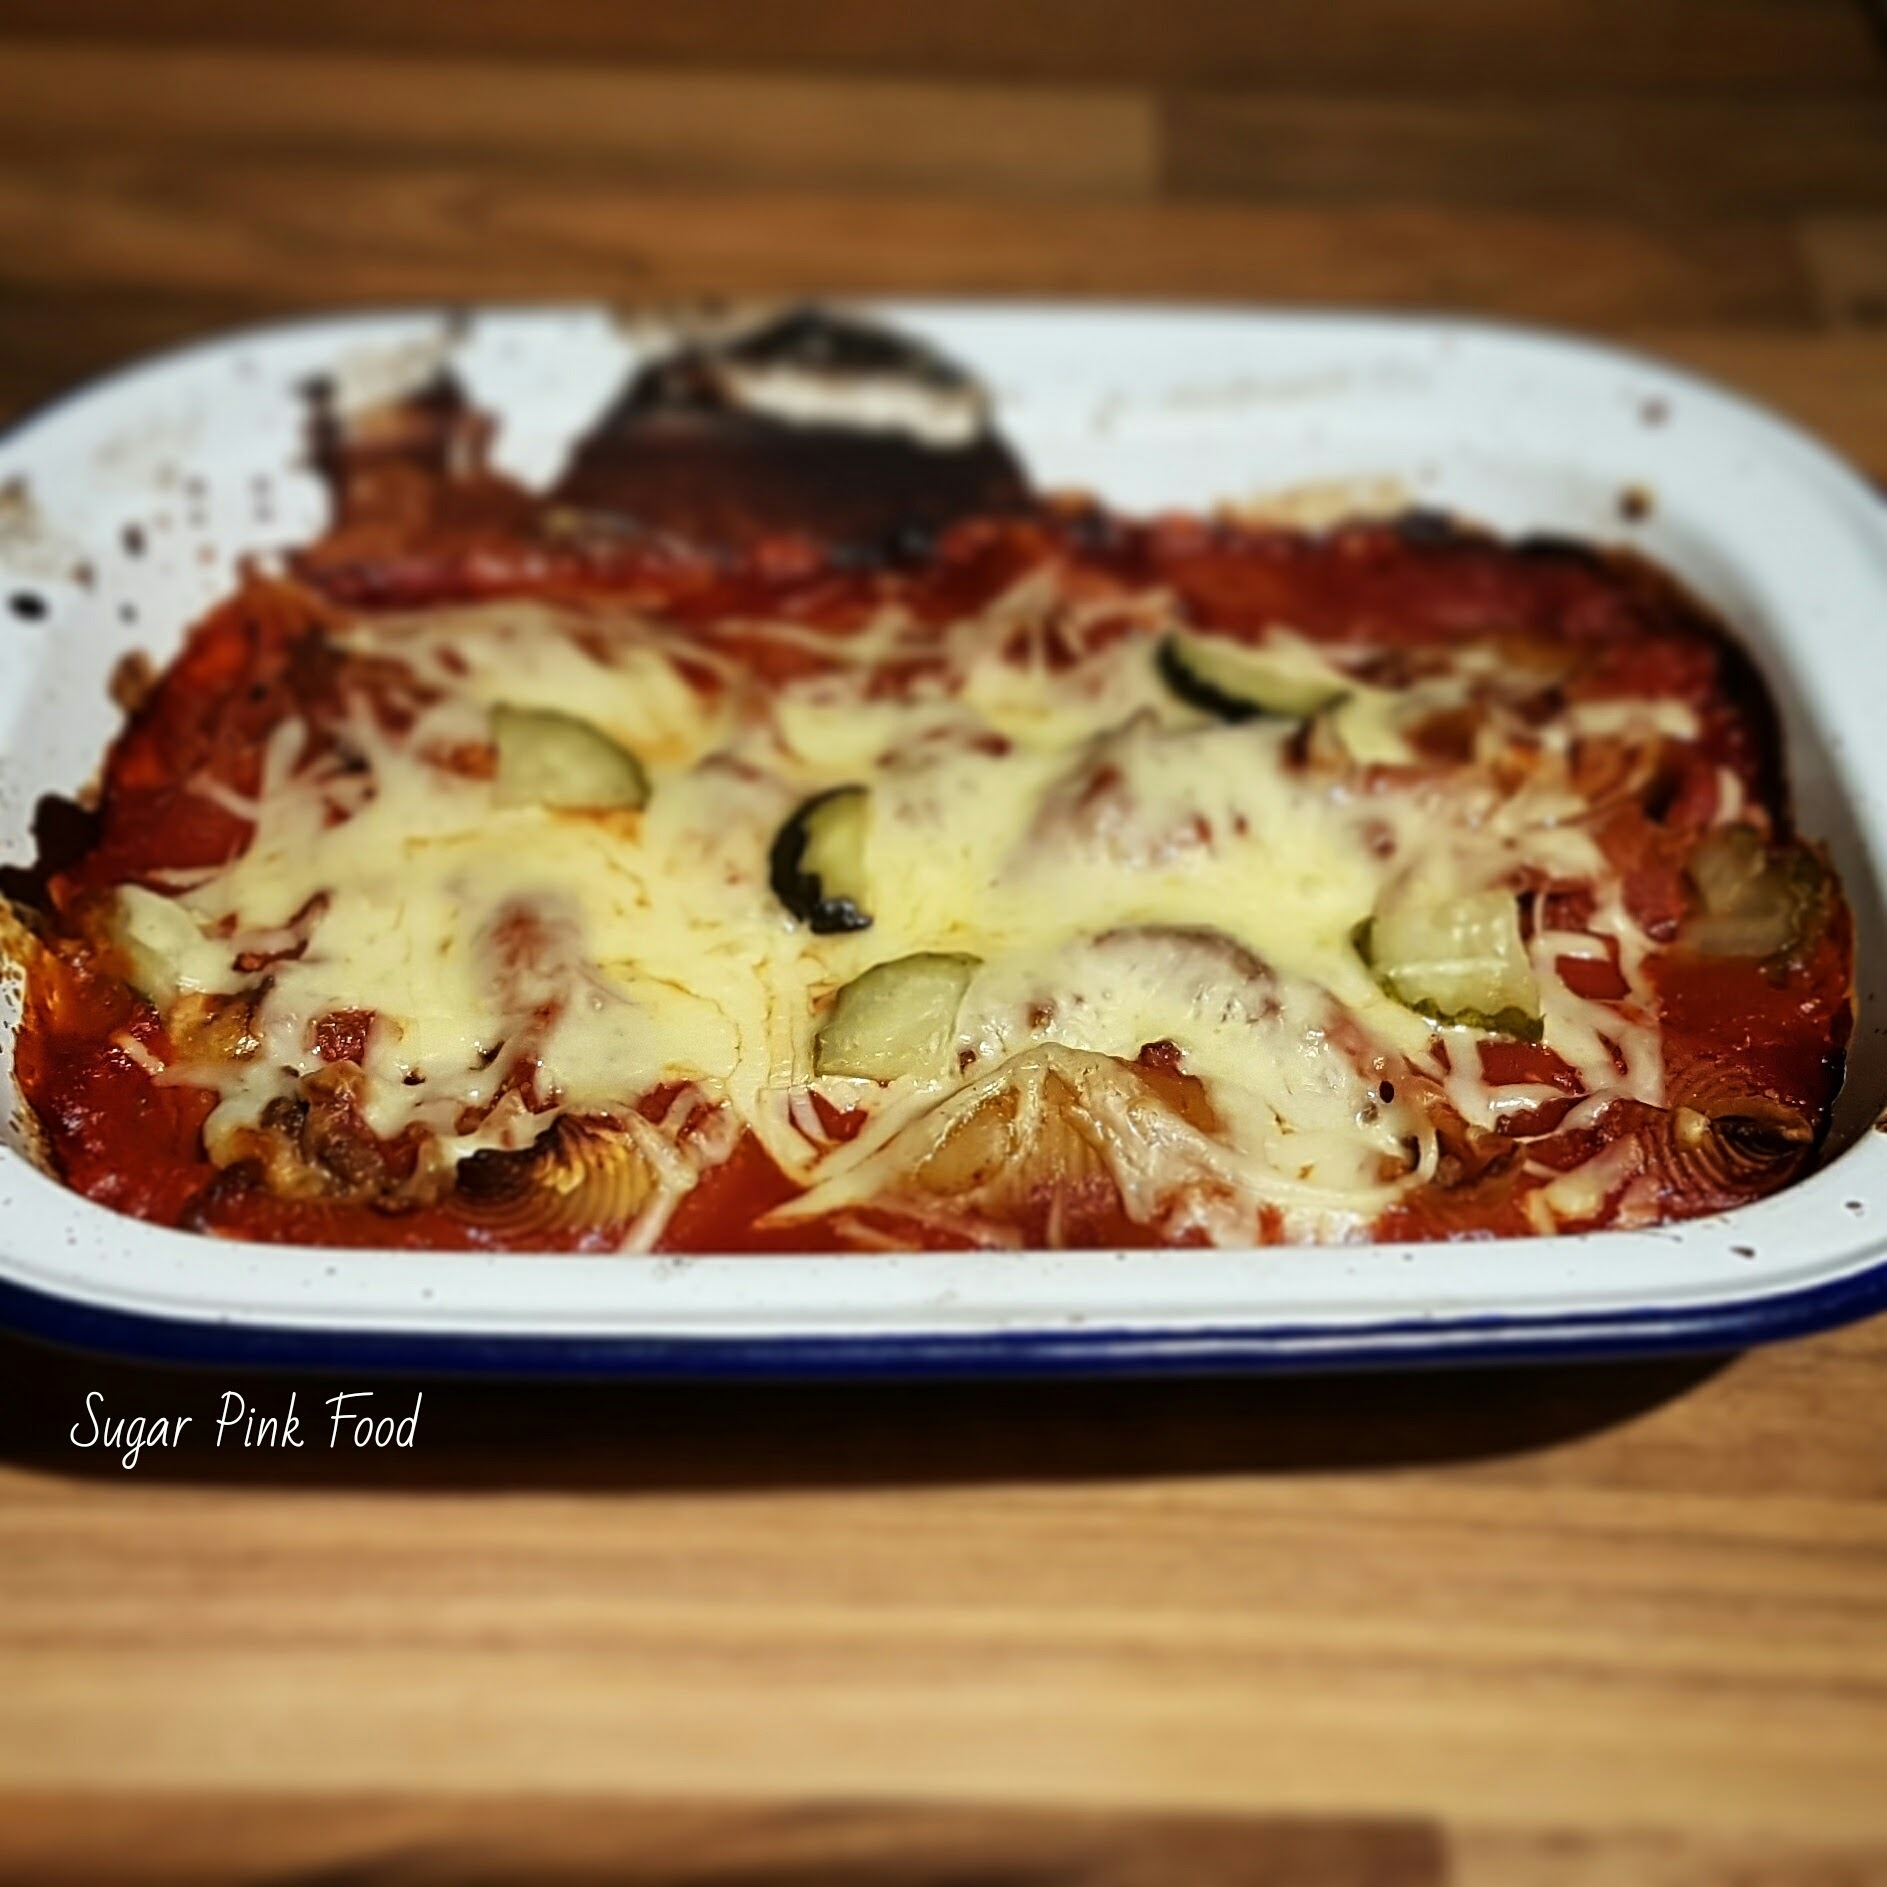 Slimming World Friendly Recipe: Cheeseburger Stuffed Pasta Shells